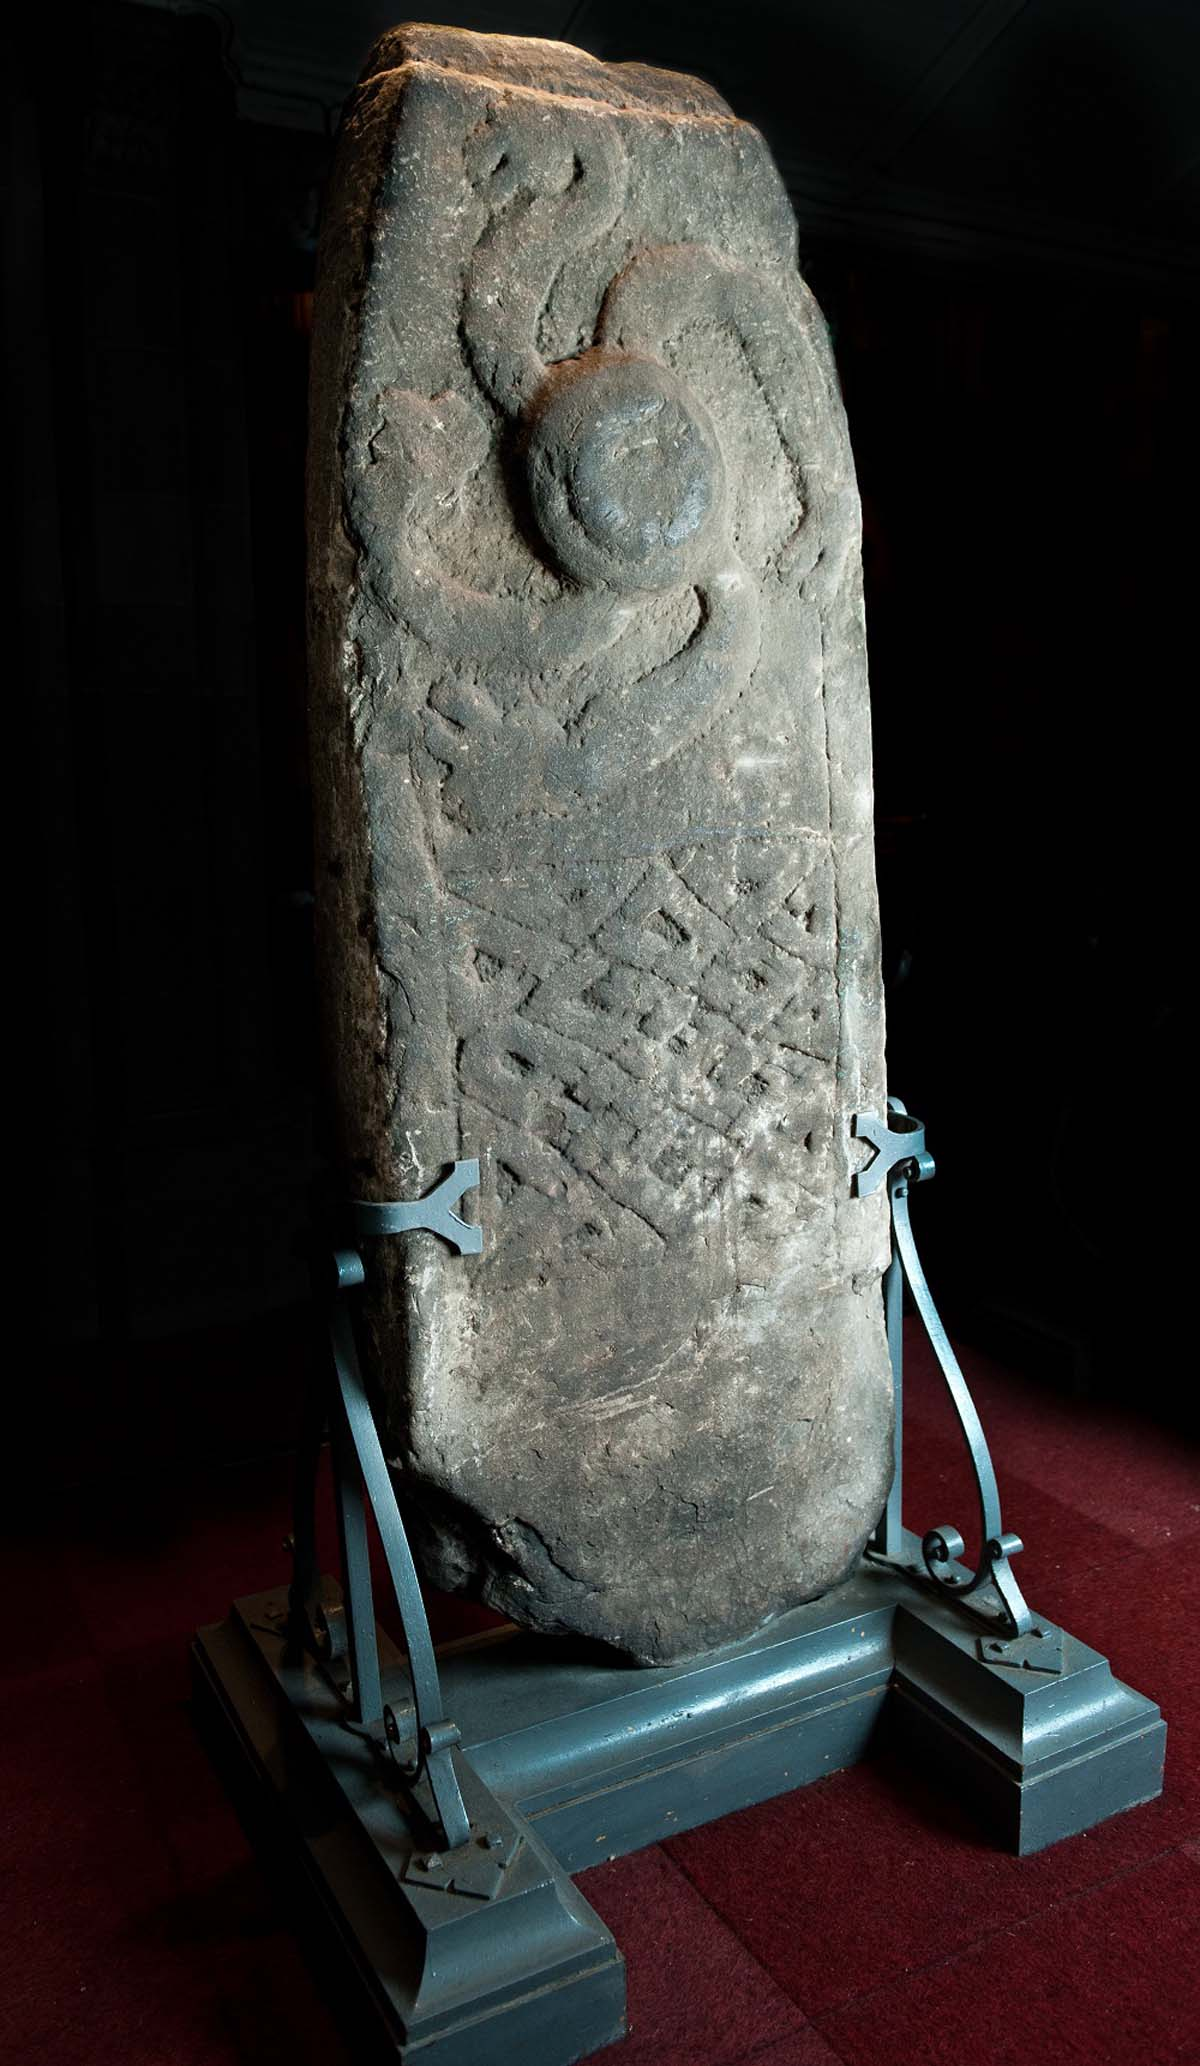 a photo of a stone with a sun-like decoration